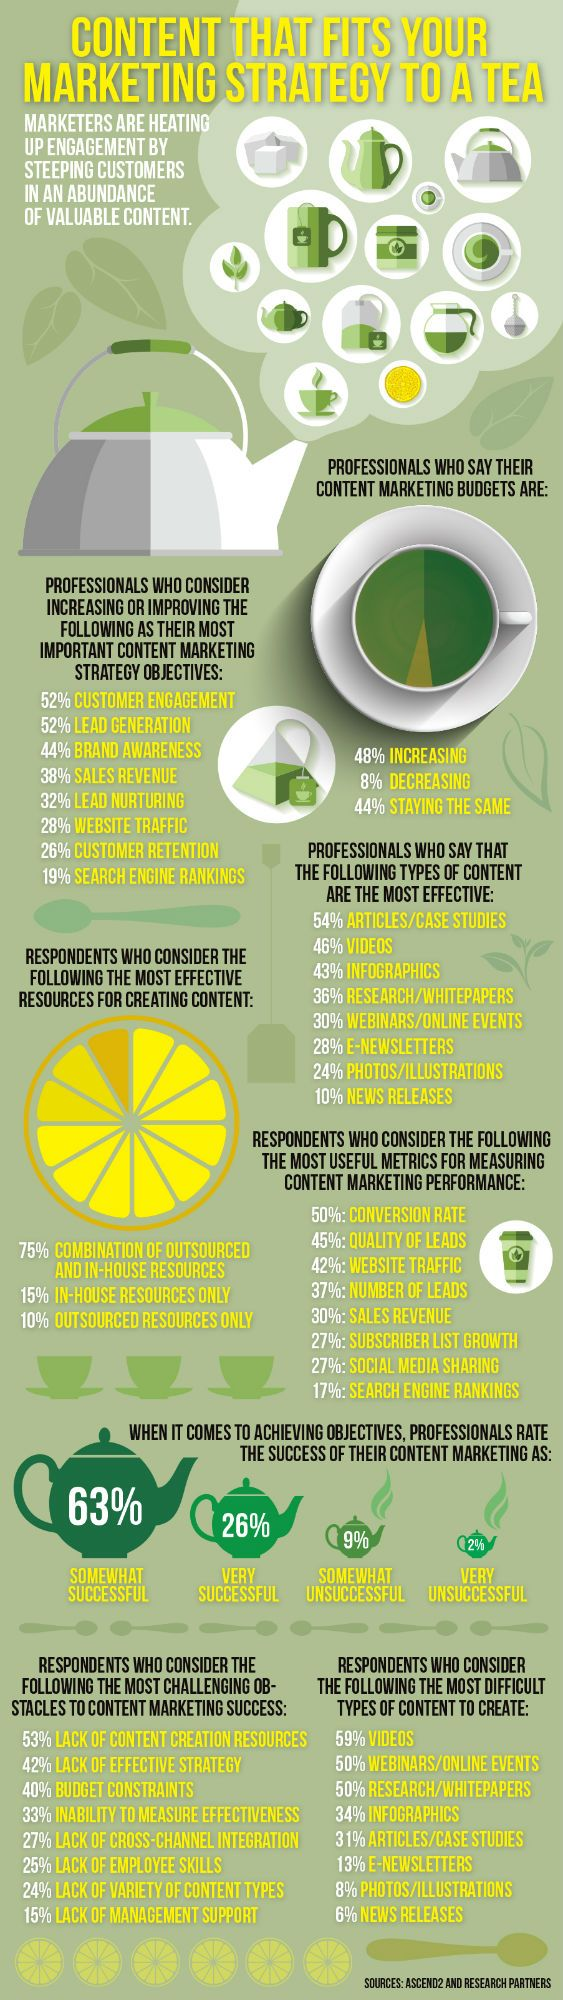 Content That Fits Your Marketing Strategy to a Tea #infographic #ContentMarketing #Marketing